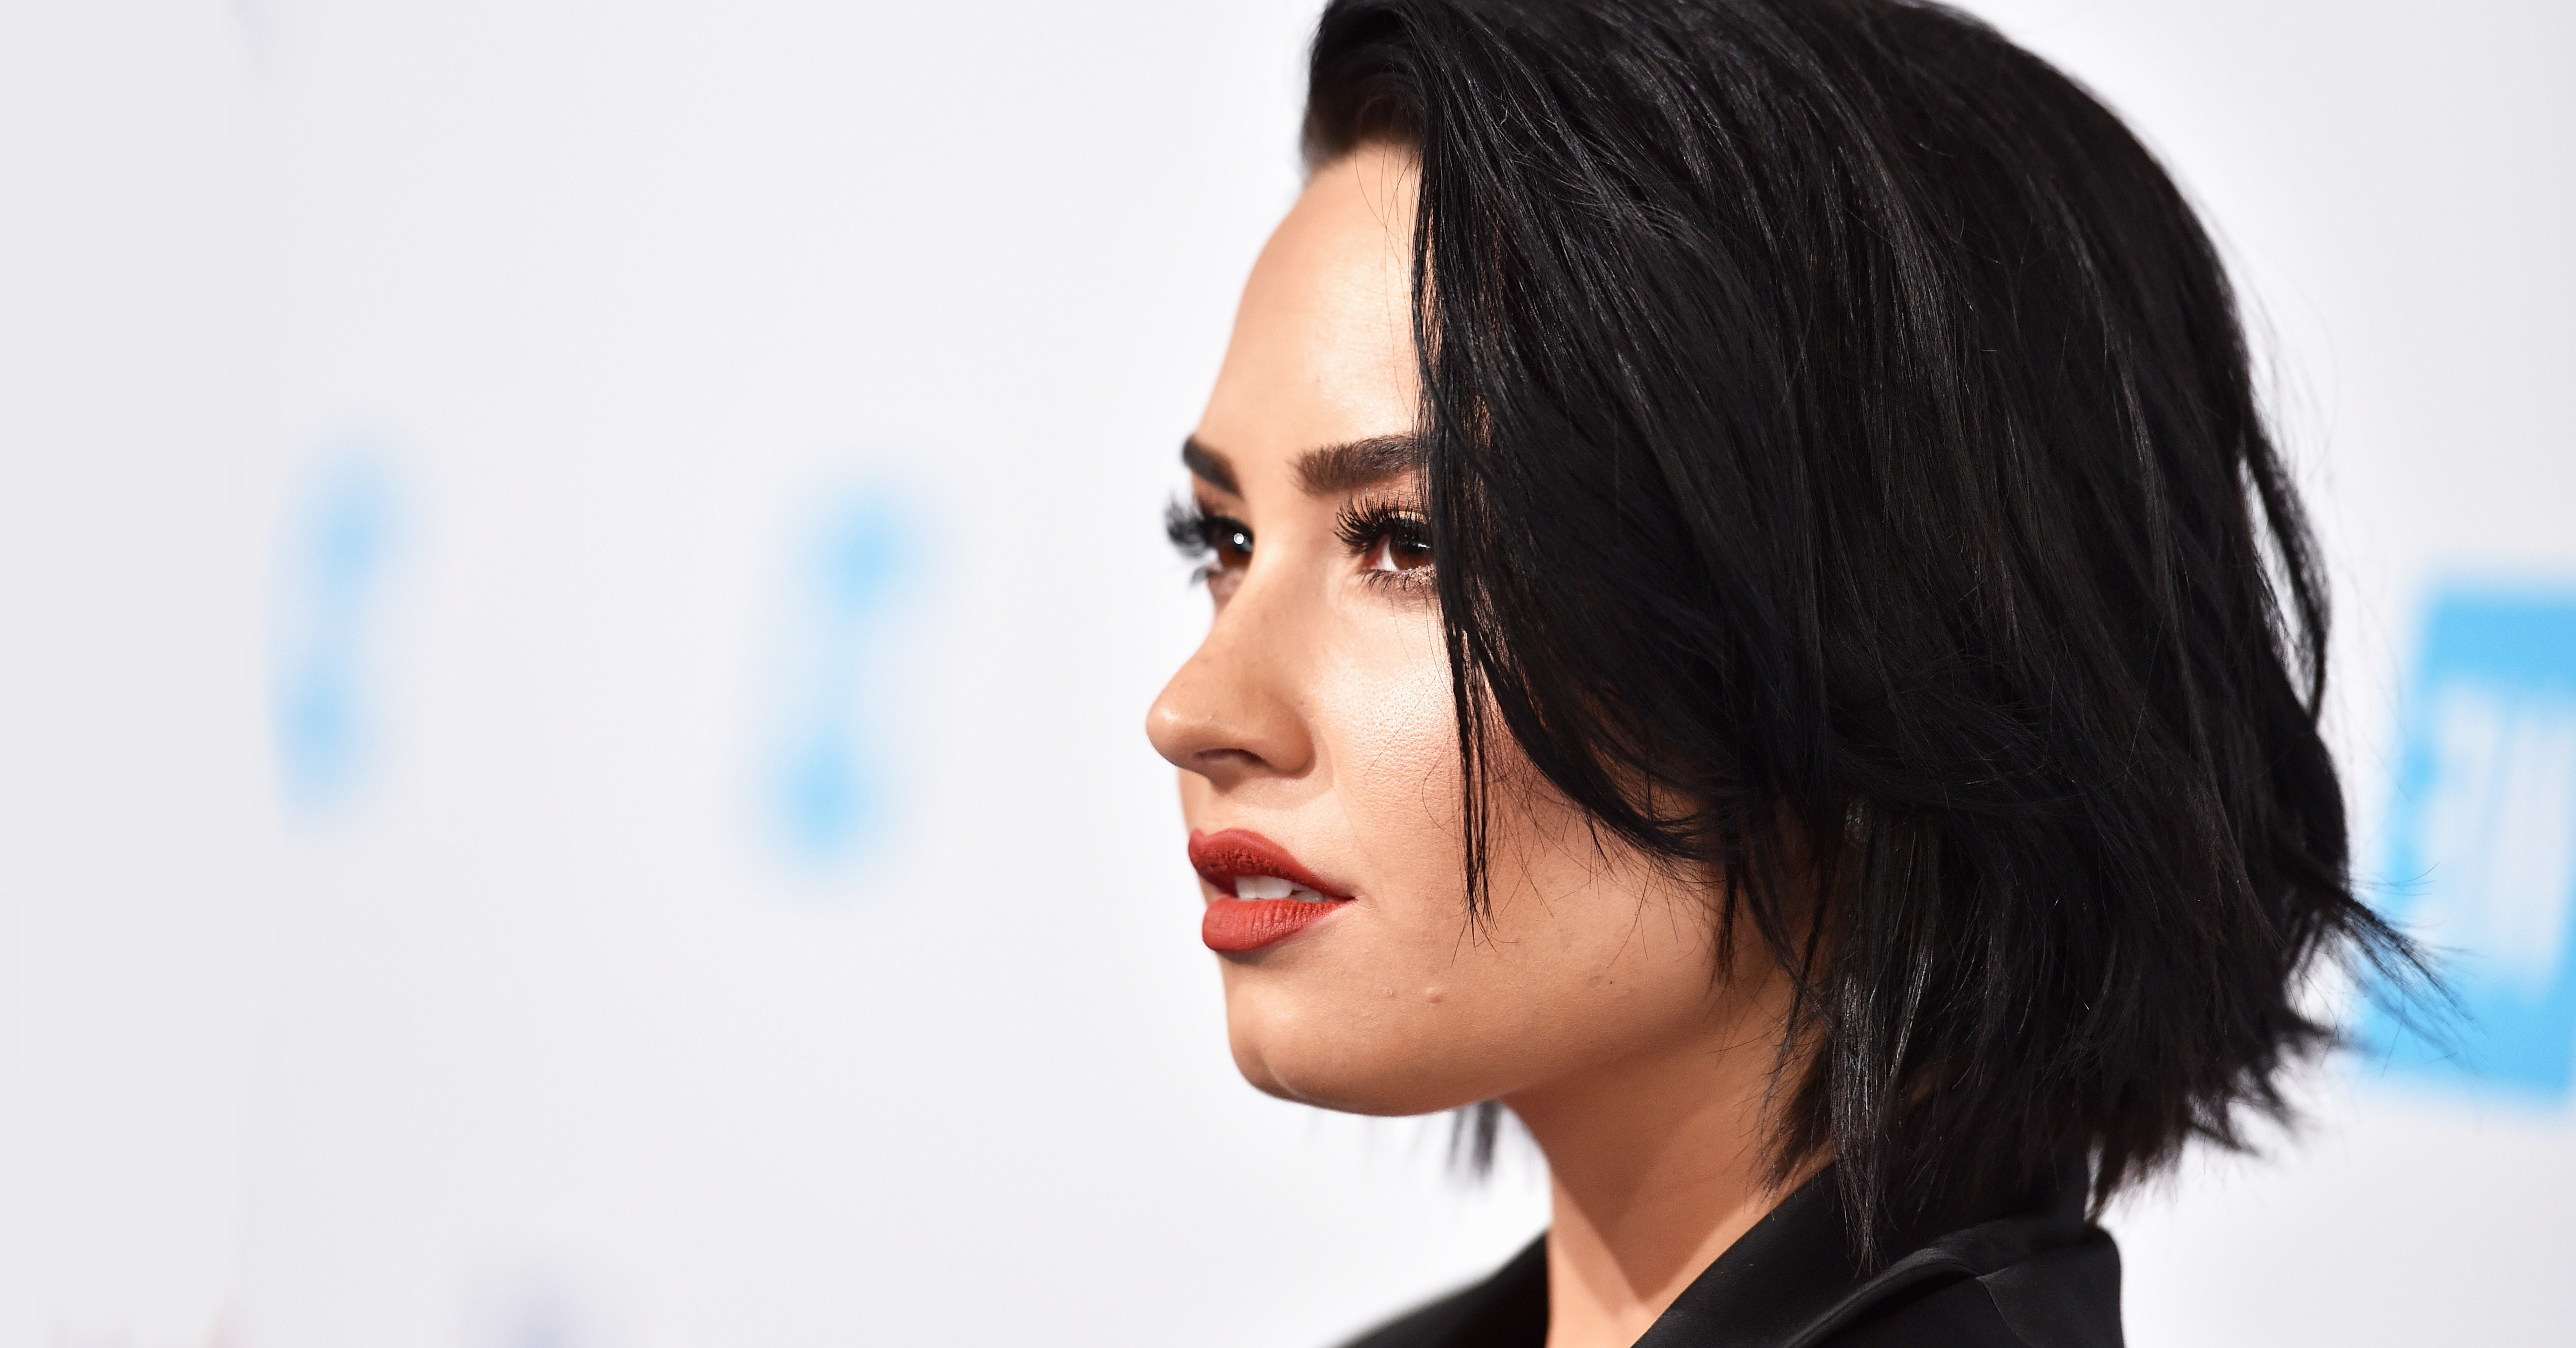 Demi Lovato Looks Incredible With Her New Ombré Hair | Glamour Throughout Demi Lovato Short Haircuts (View 10 of 25)